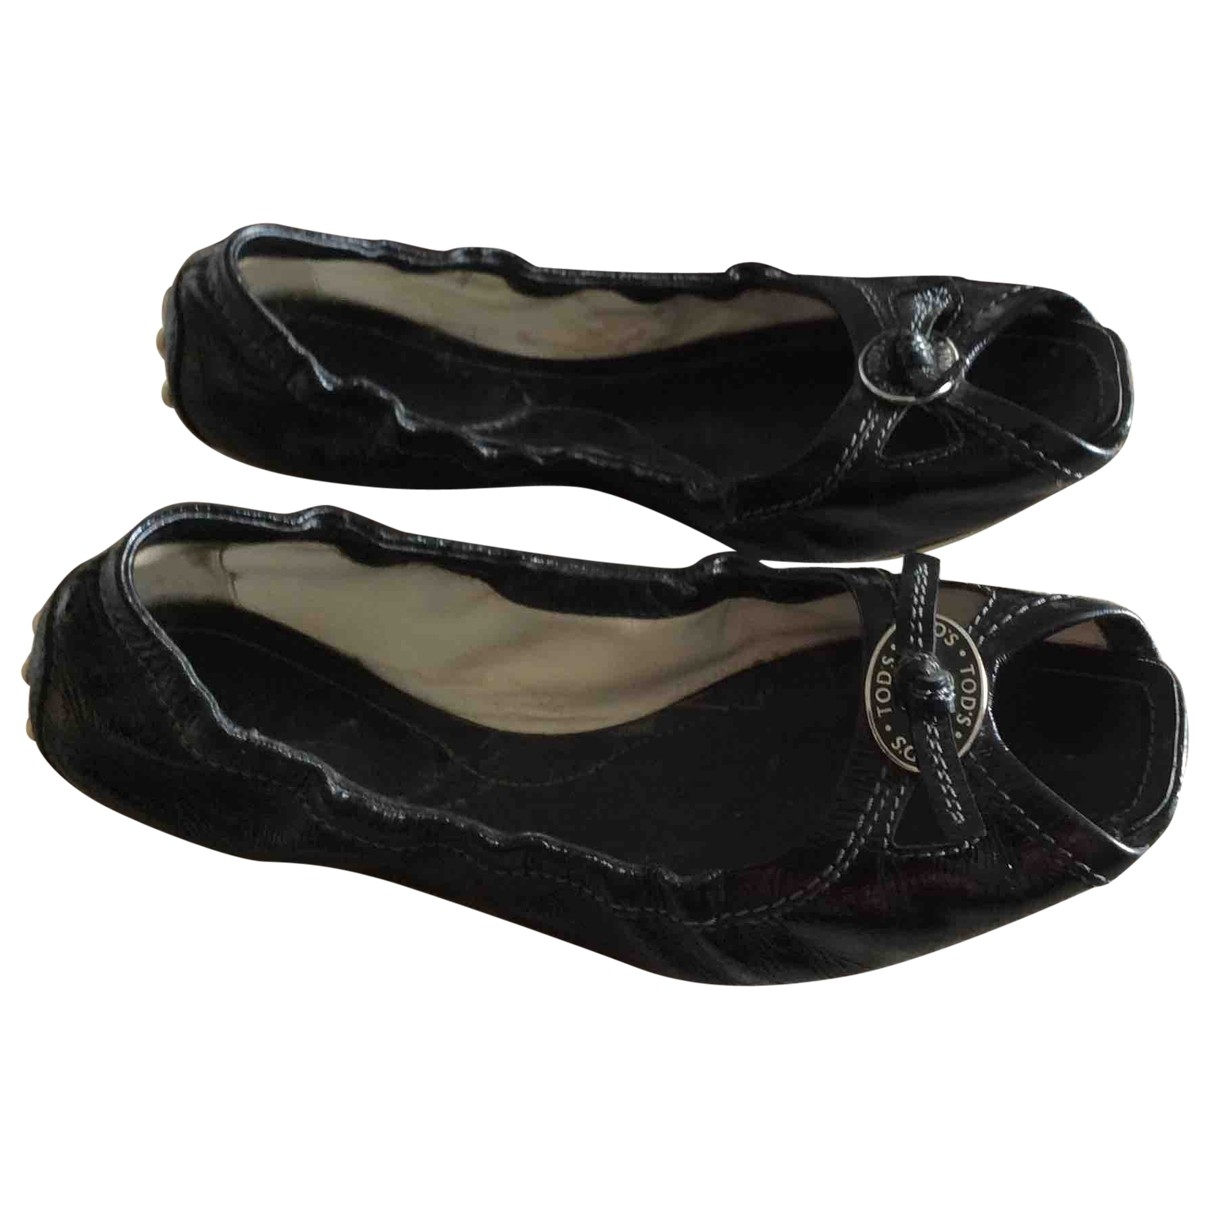 Tod's \N Black Patent leather Ballet flats for Women 35.5 EU